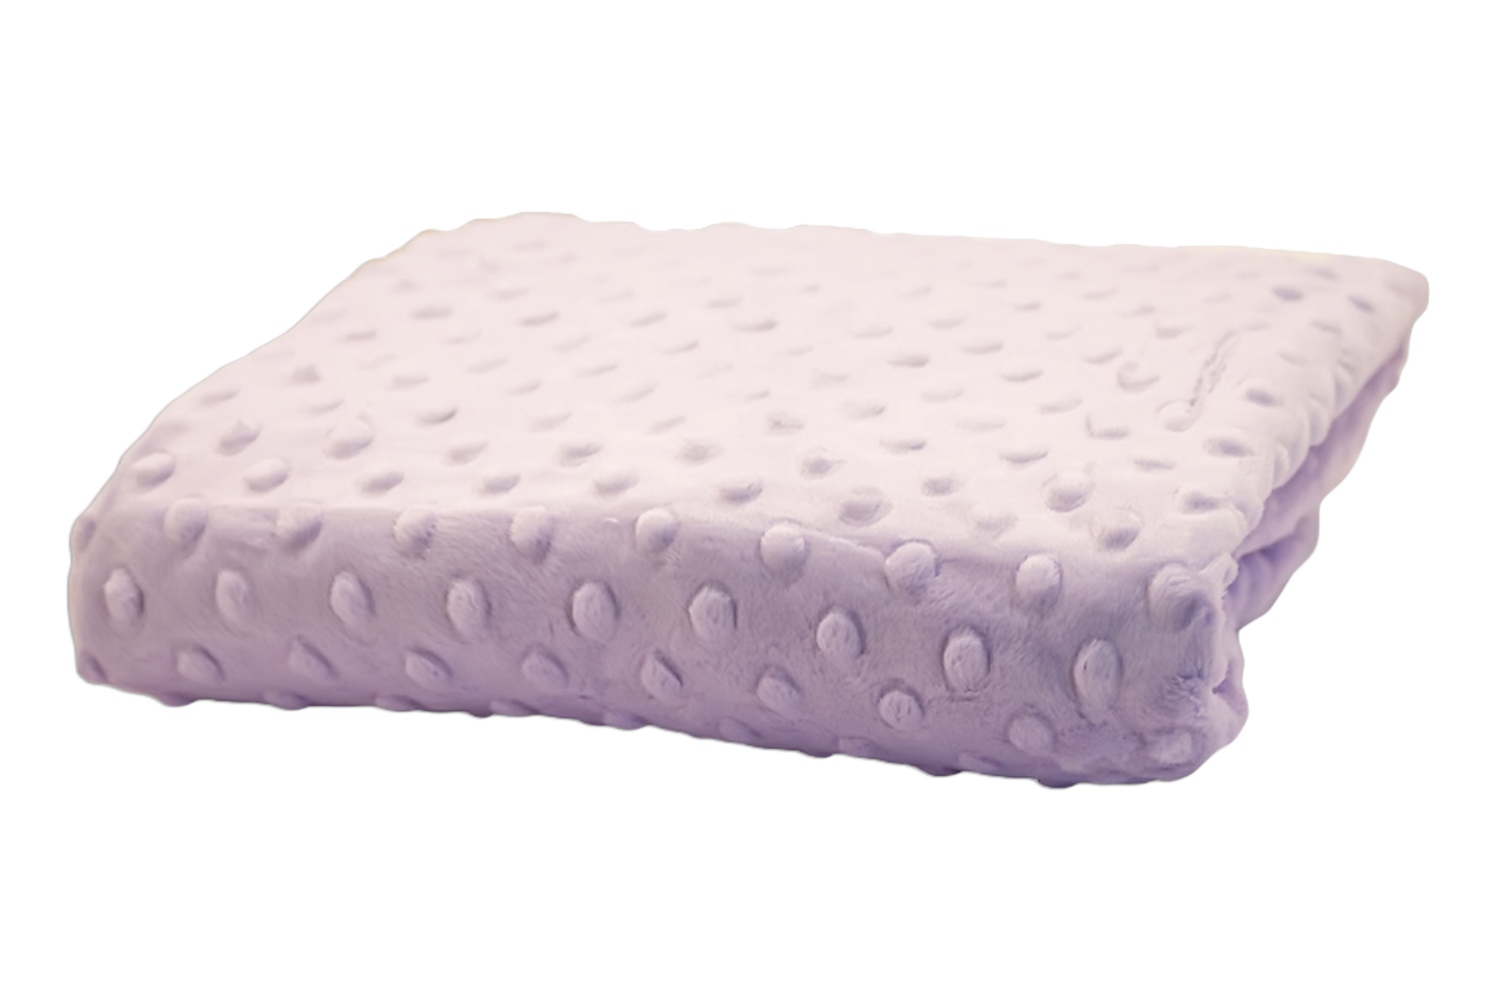 Rumble Tuff Kit Minky Dot Contour Changing Pad Cover - Compact, Lavender